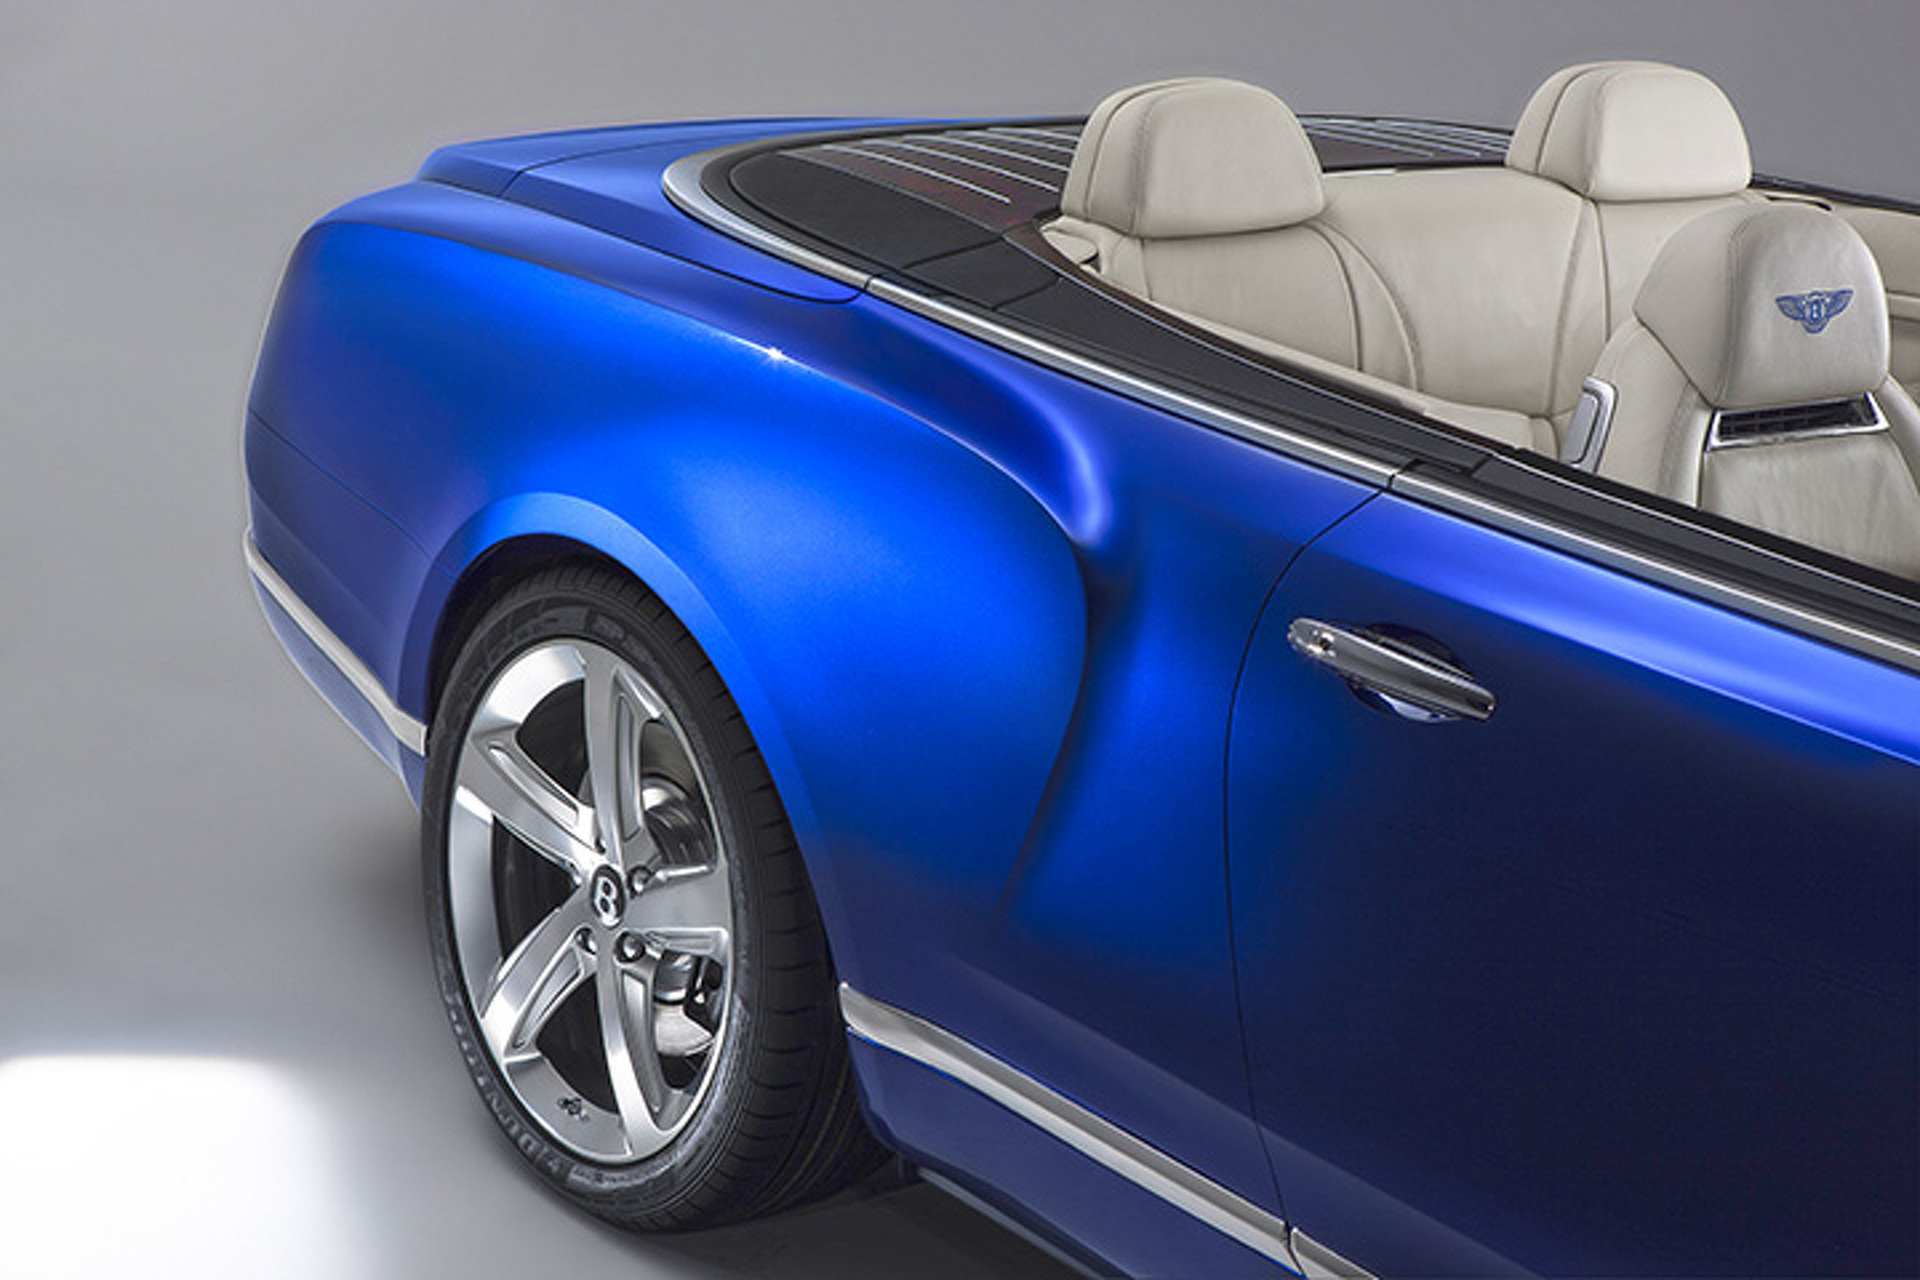 Bentley Goes Grand in LA With New Convertible Concept